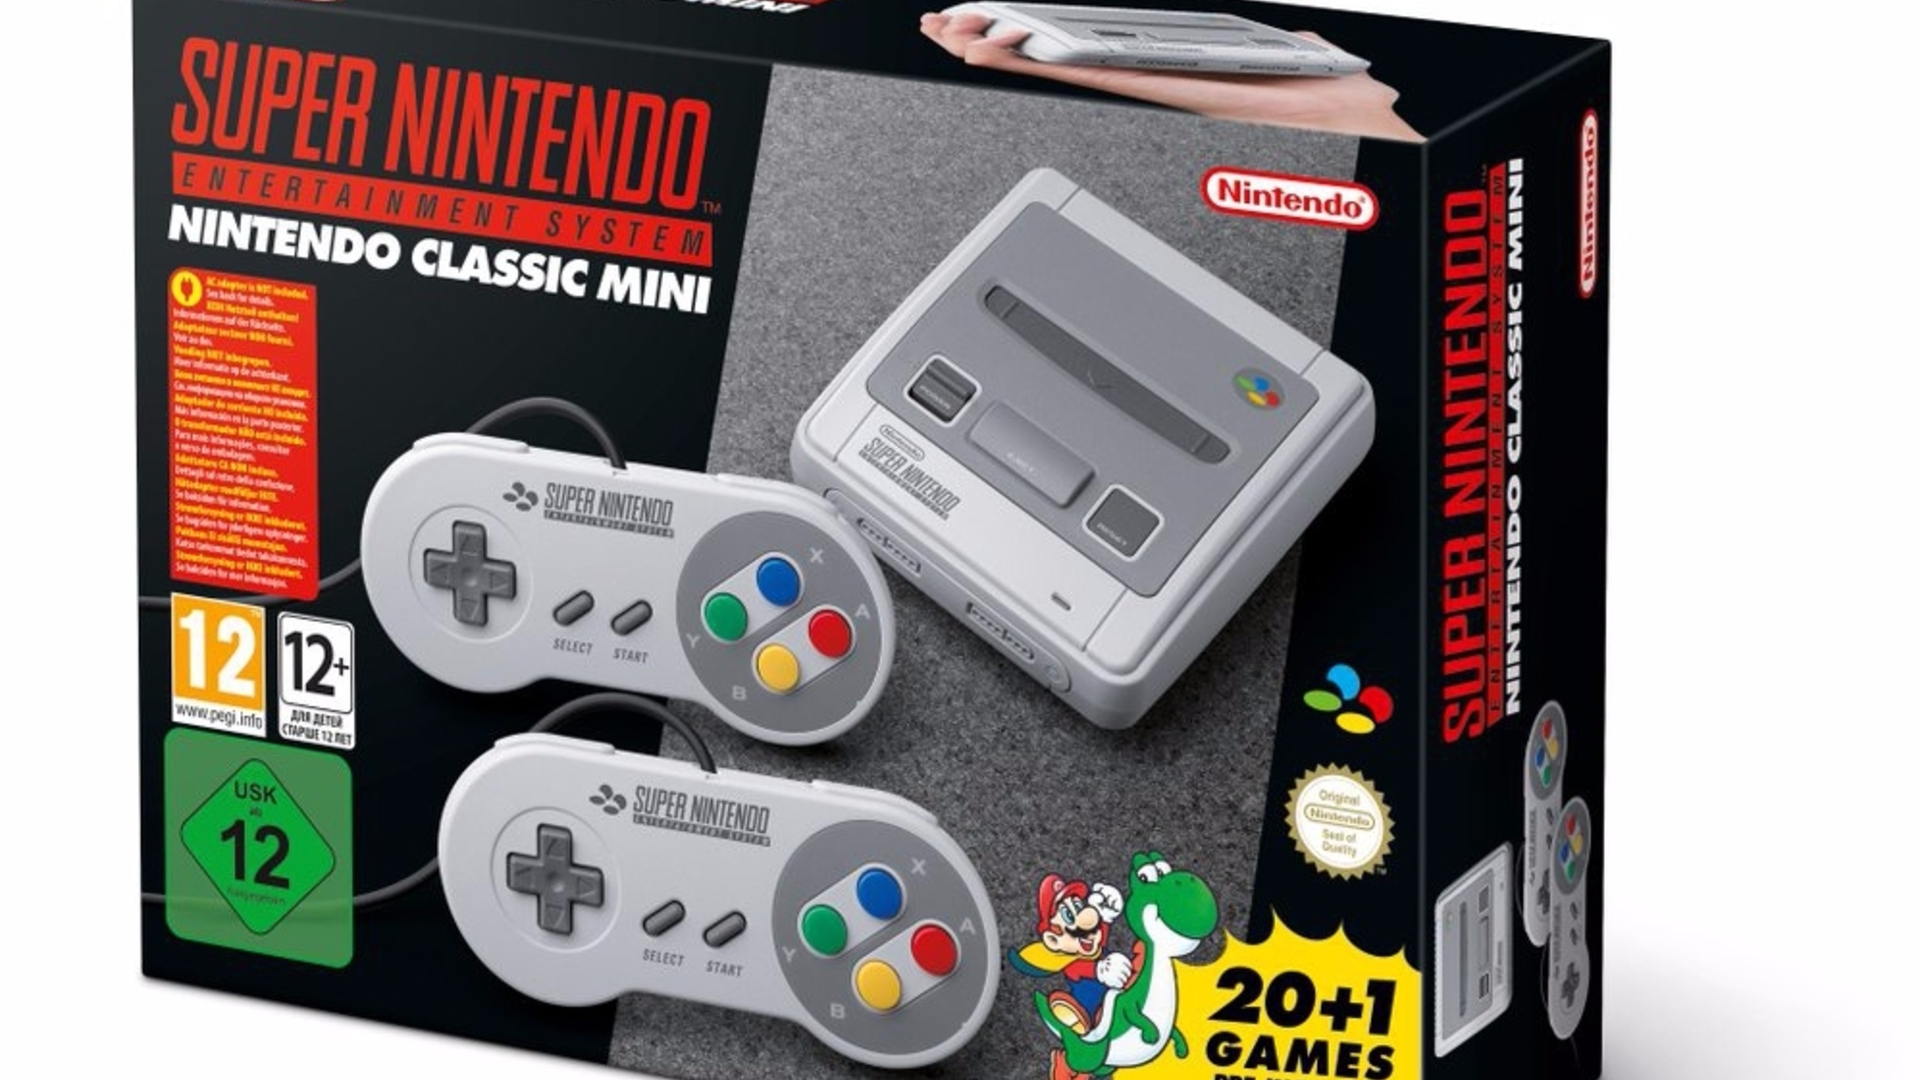 Snes Classic Games List Controllers And Specs Uk Pre Order Pc Power Supply Pinout 24 Pin Color Code In Addition Nintendo 64 Multi Release Date Everything Else We Know About The Mini